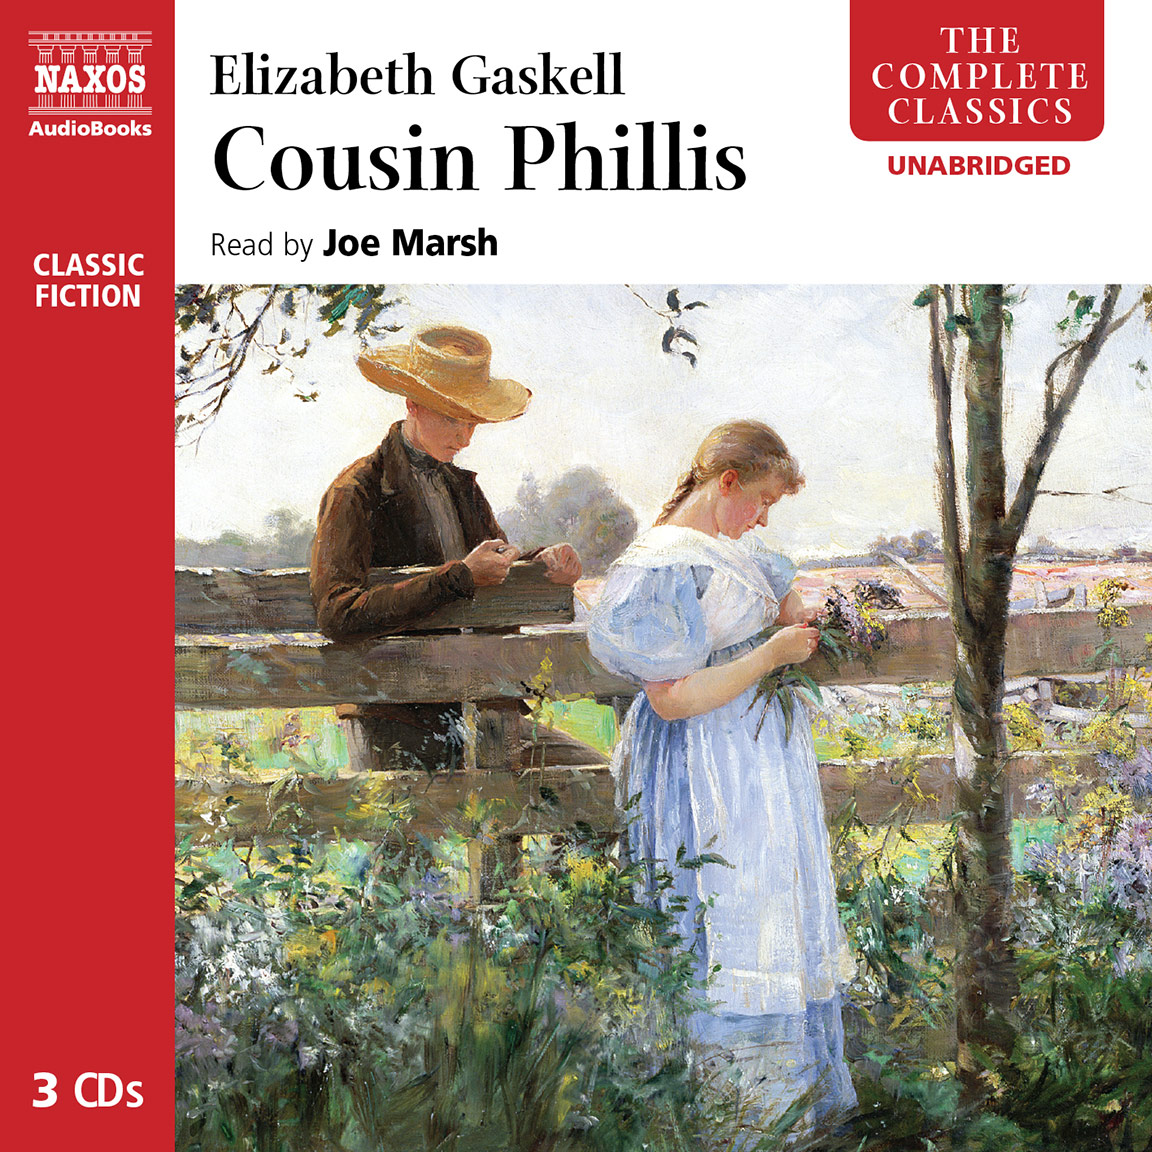 Cousin Phillis (unabridged)